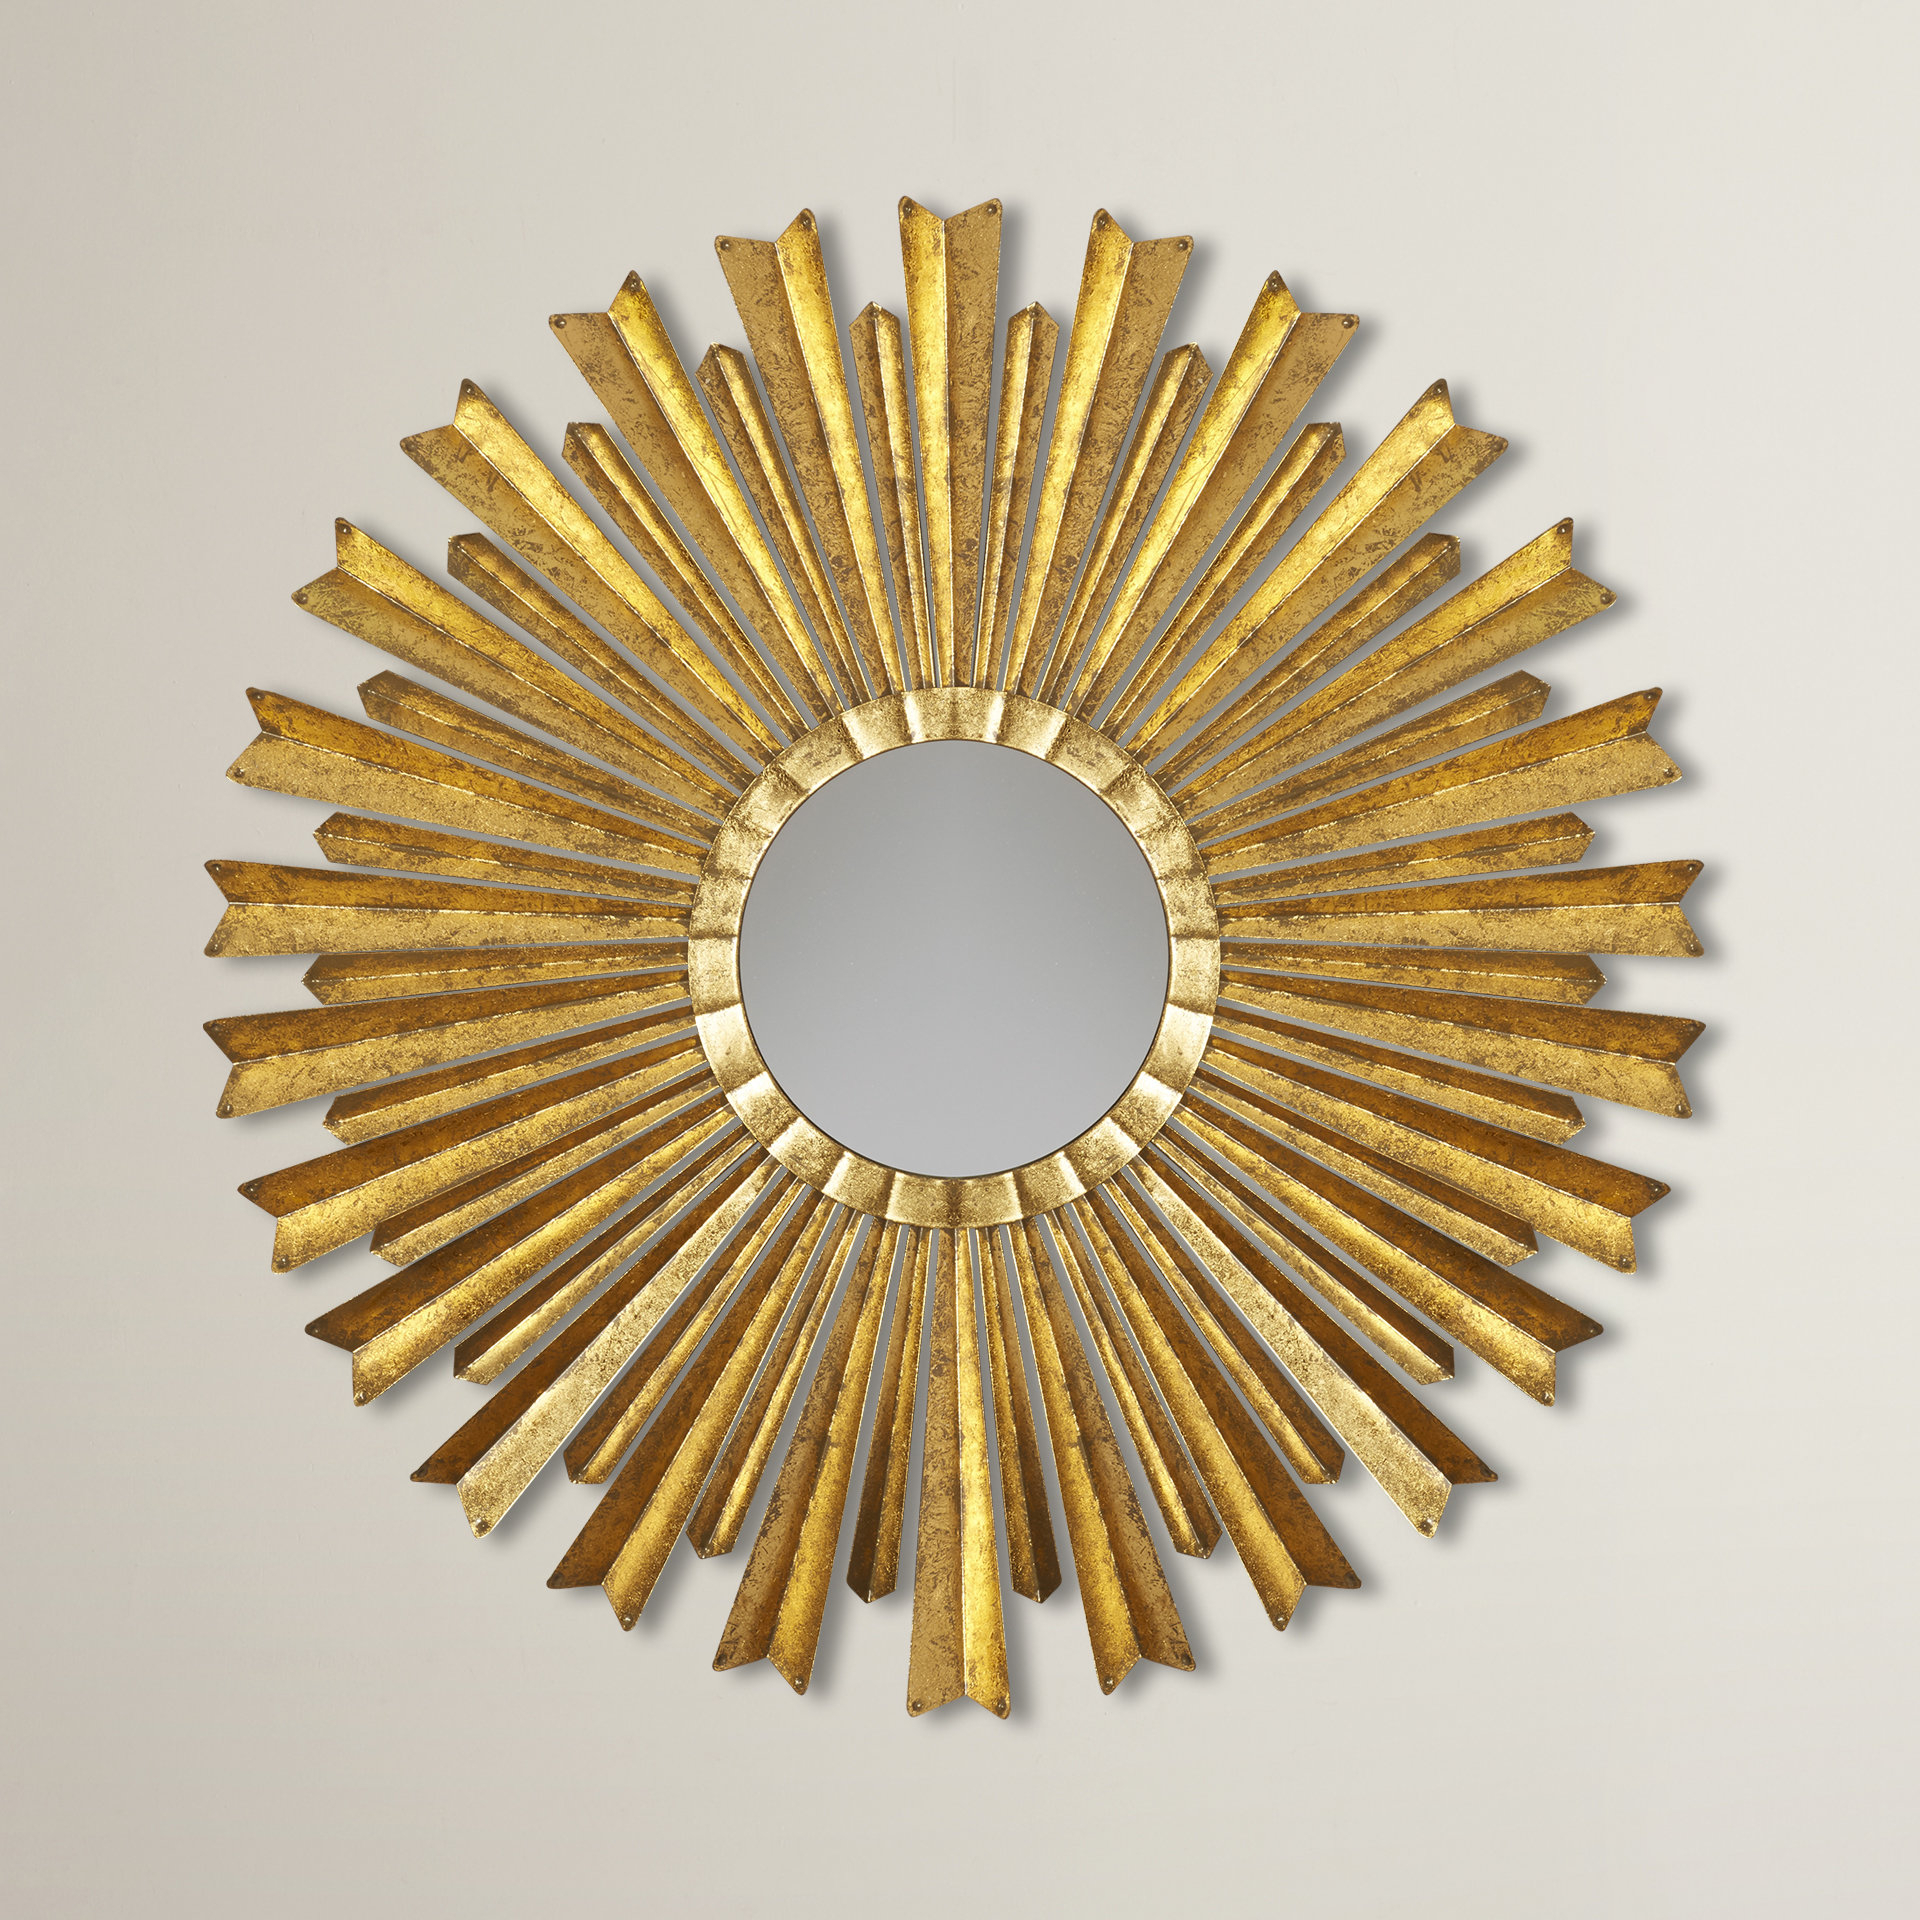 Sunburst Wall Mirrors You'll Love In 2019 | Wayfair With Brylee Traditional Sunburst Mirrors (View 14 of 20)